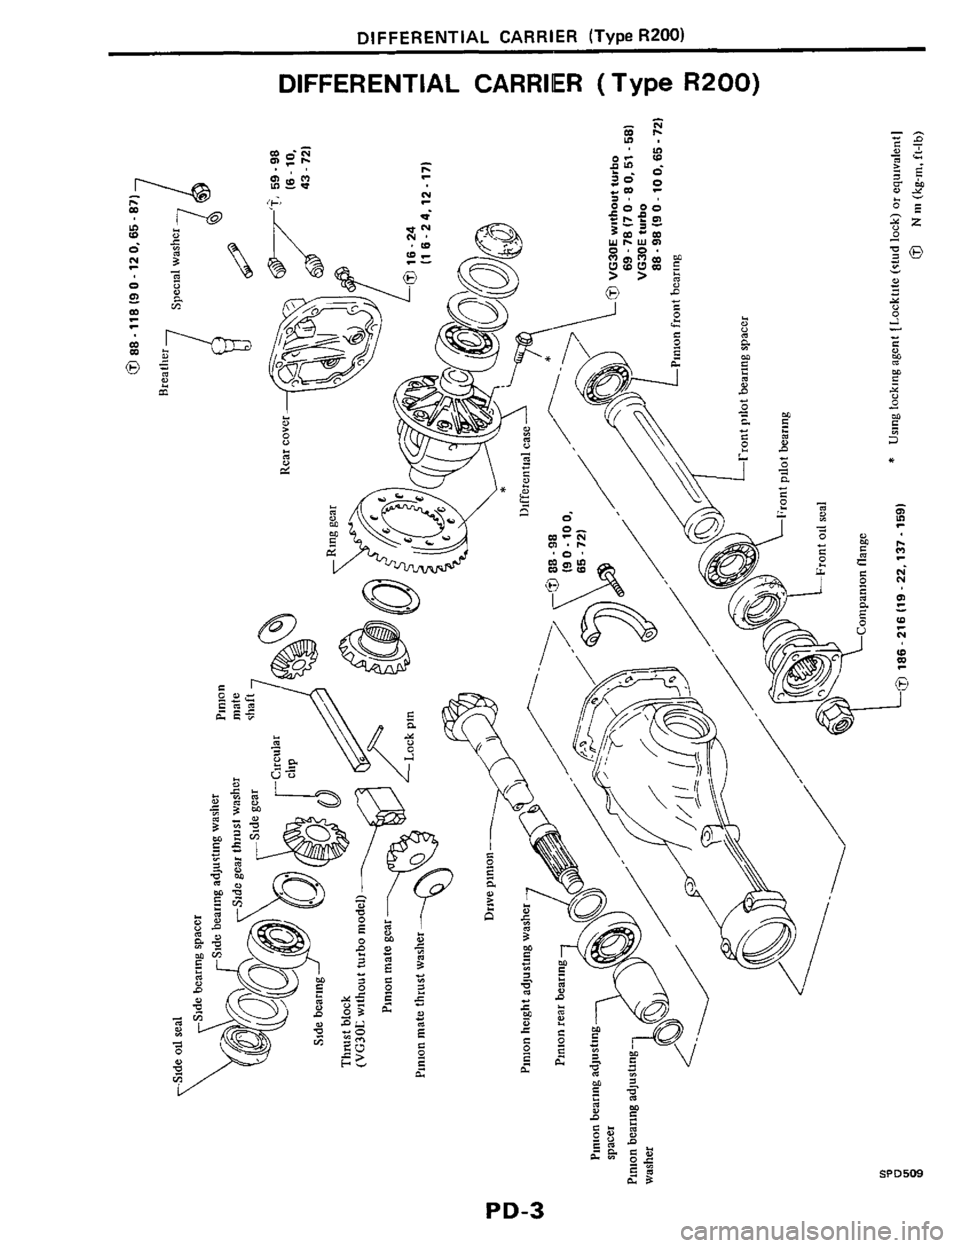 NISSAN 300ZX 1984 Z31 Propeller Shaft And Differential Carrier Workshop Manual, Page 3